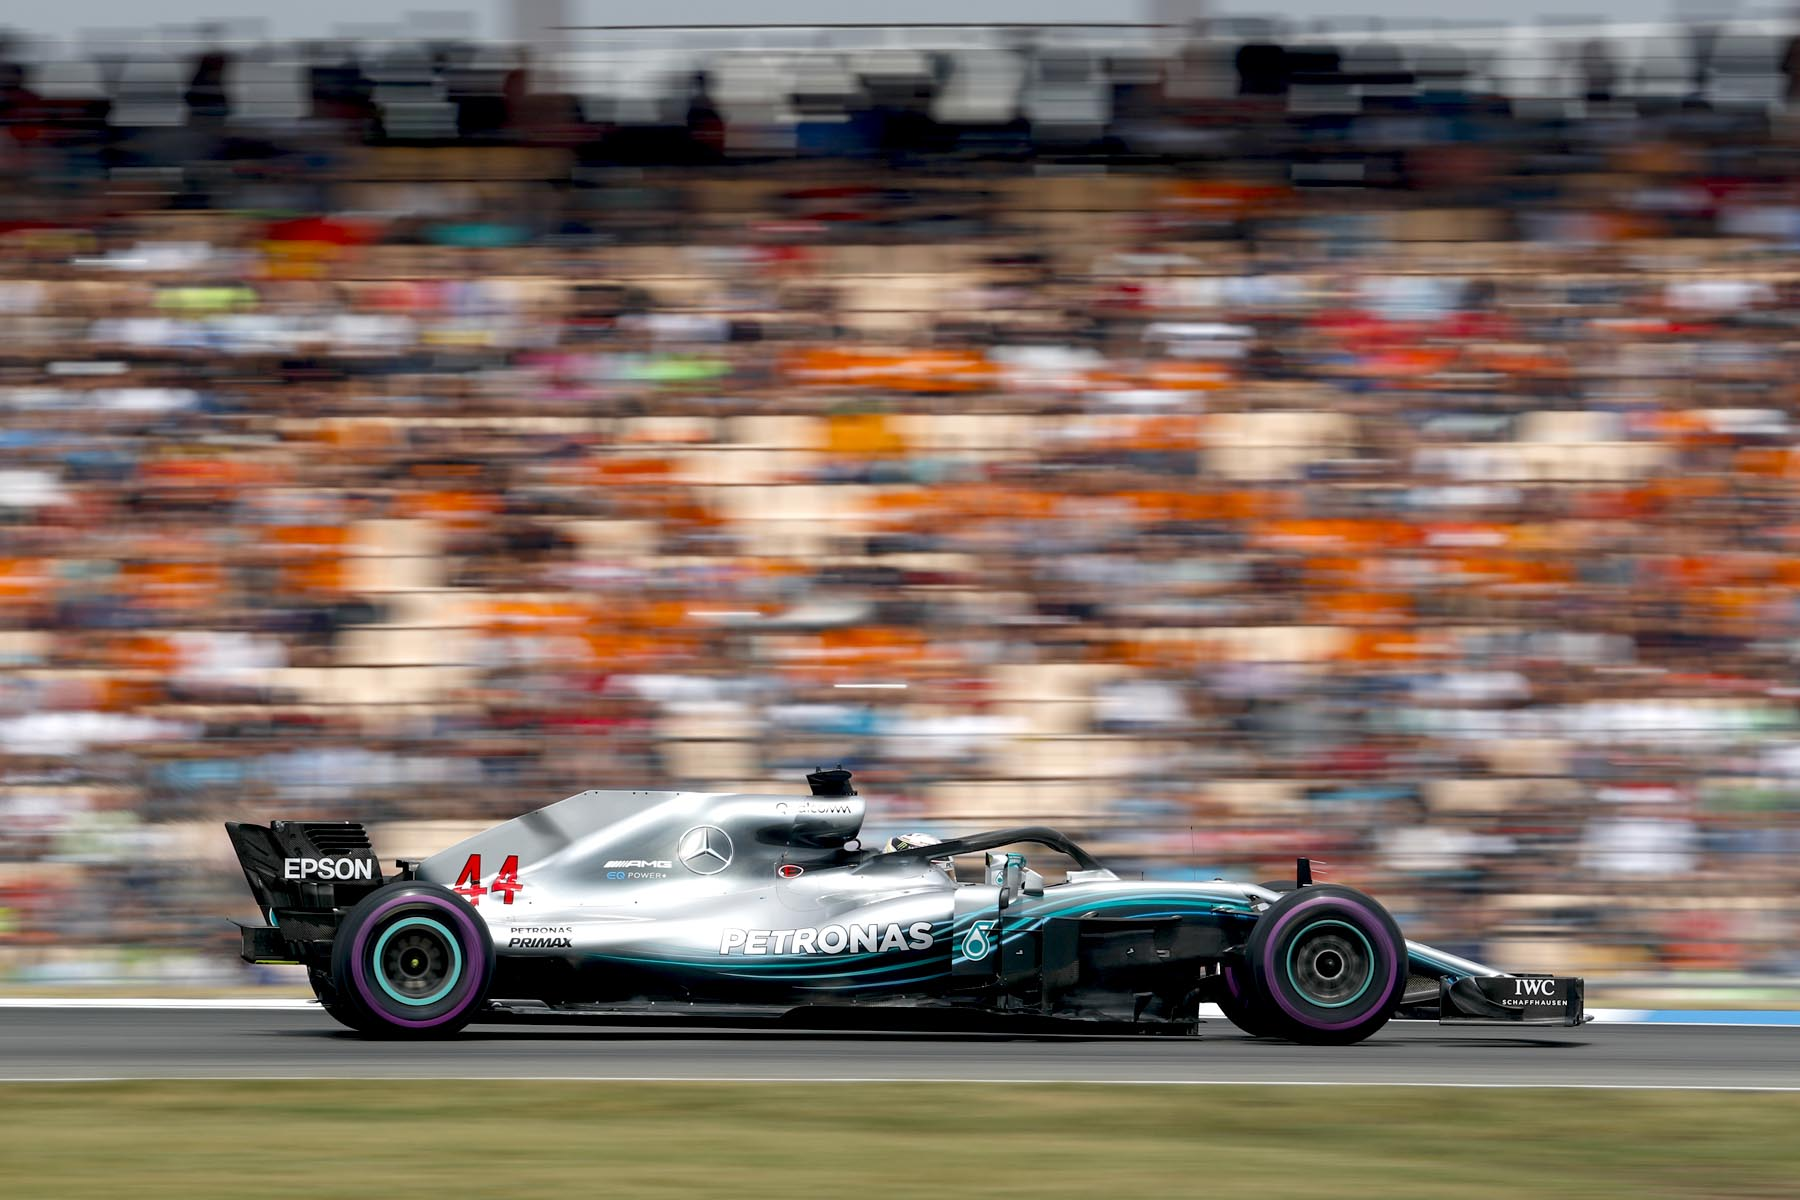 Lewis Hamilton on track at the 2018 German Grand Prix.